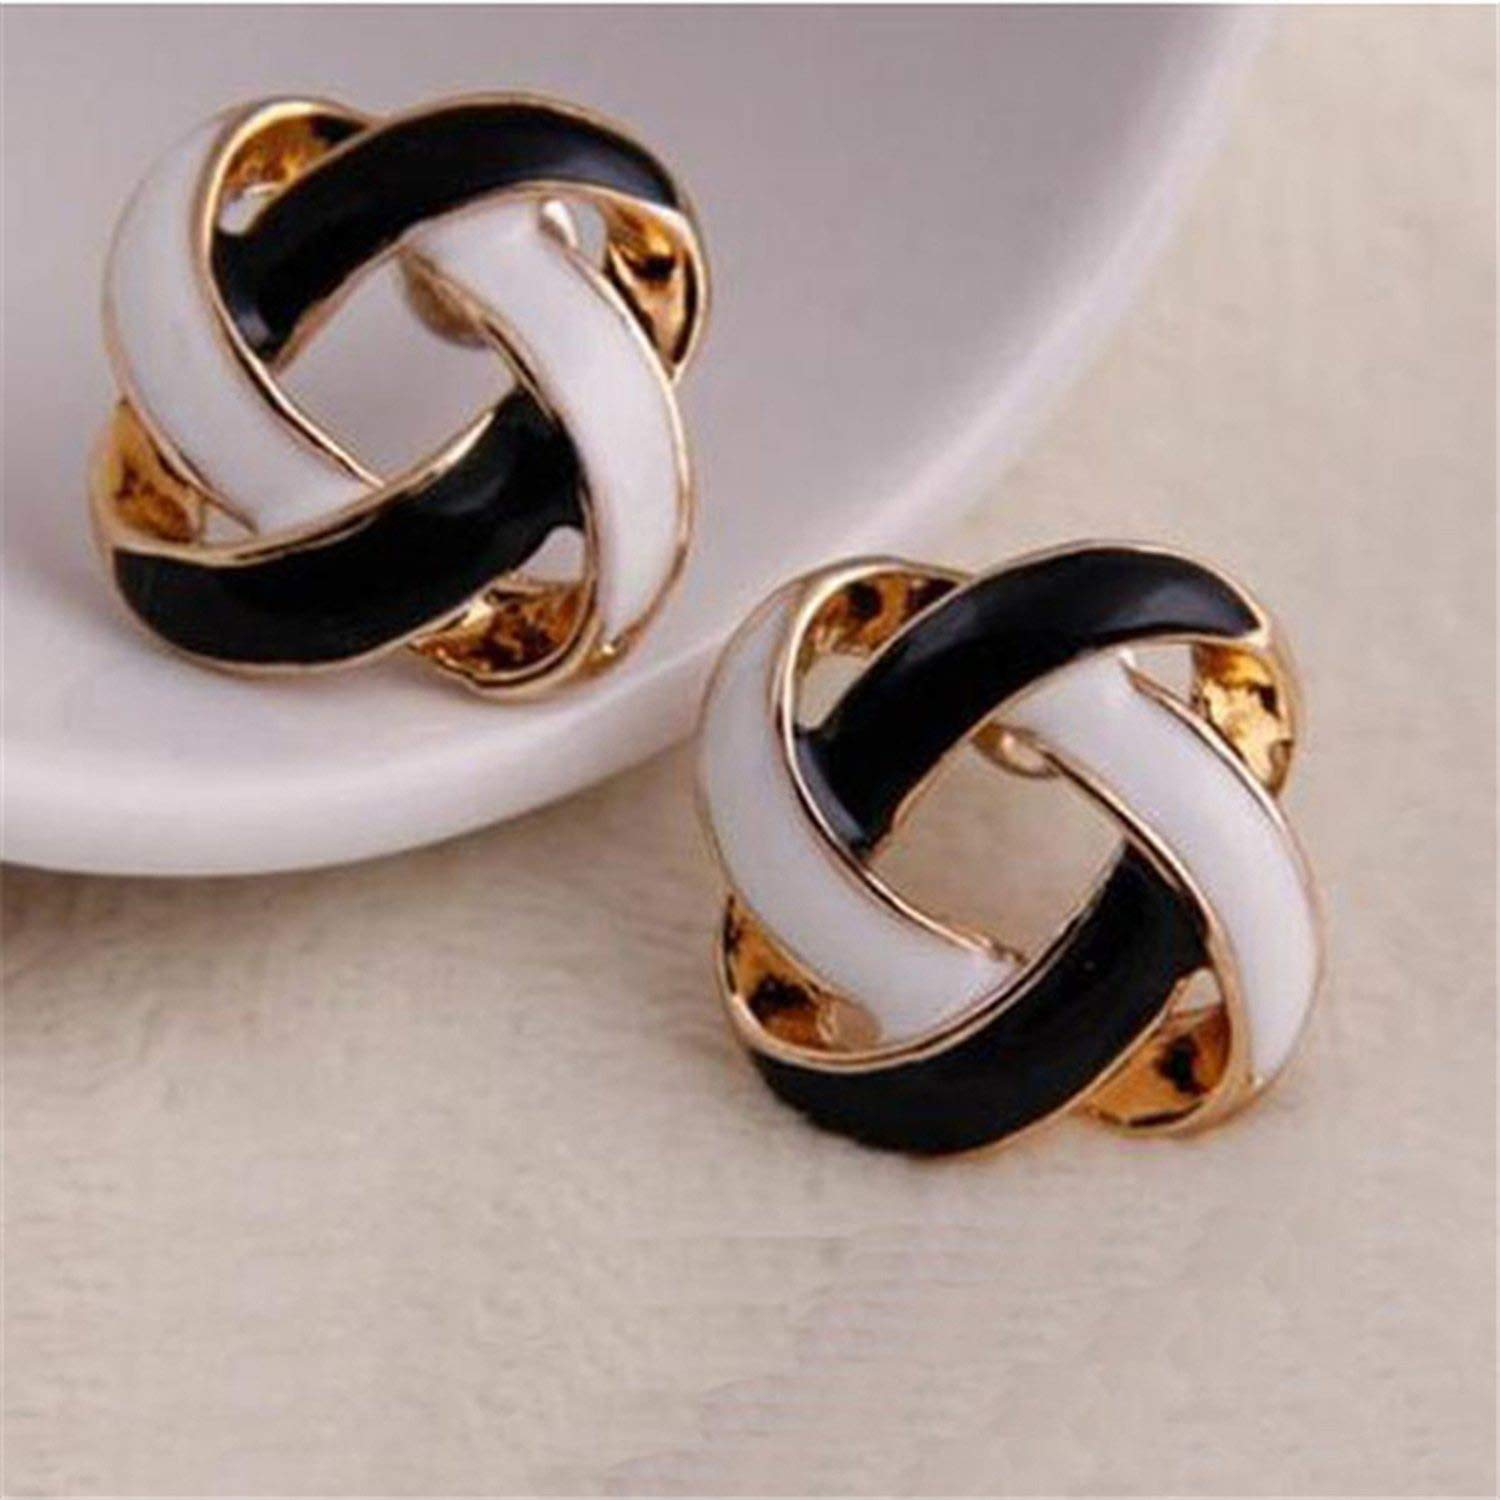 Tendy 1 Pair Women Korean Vintage Charming Black and White Simple Hollow Earrings Jewelry Gift